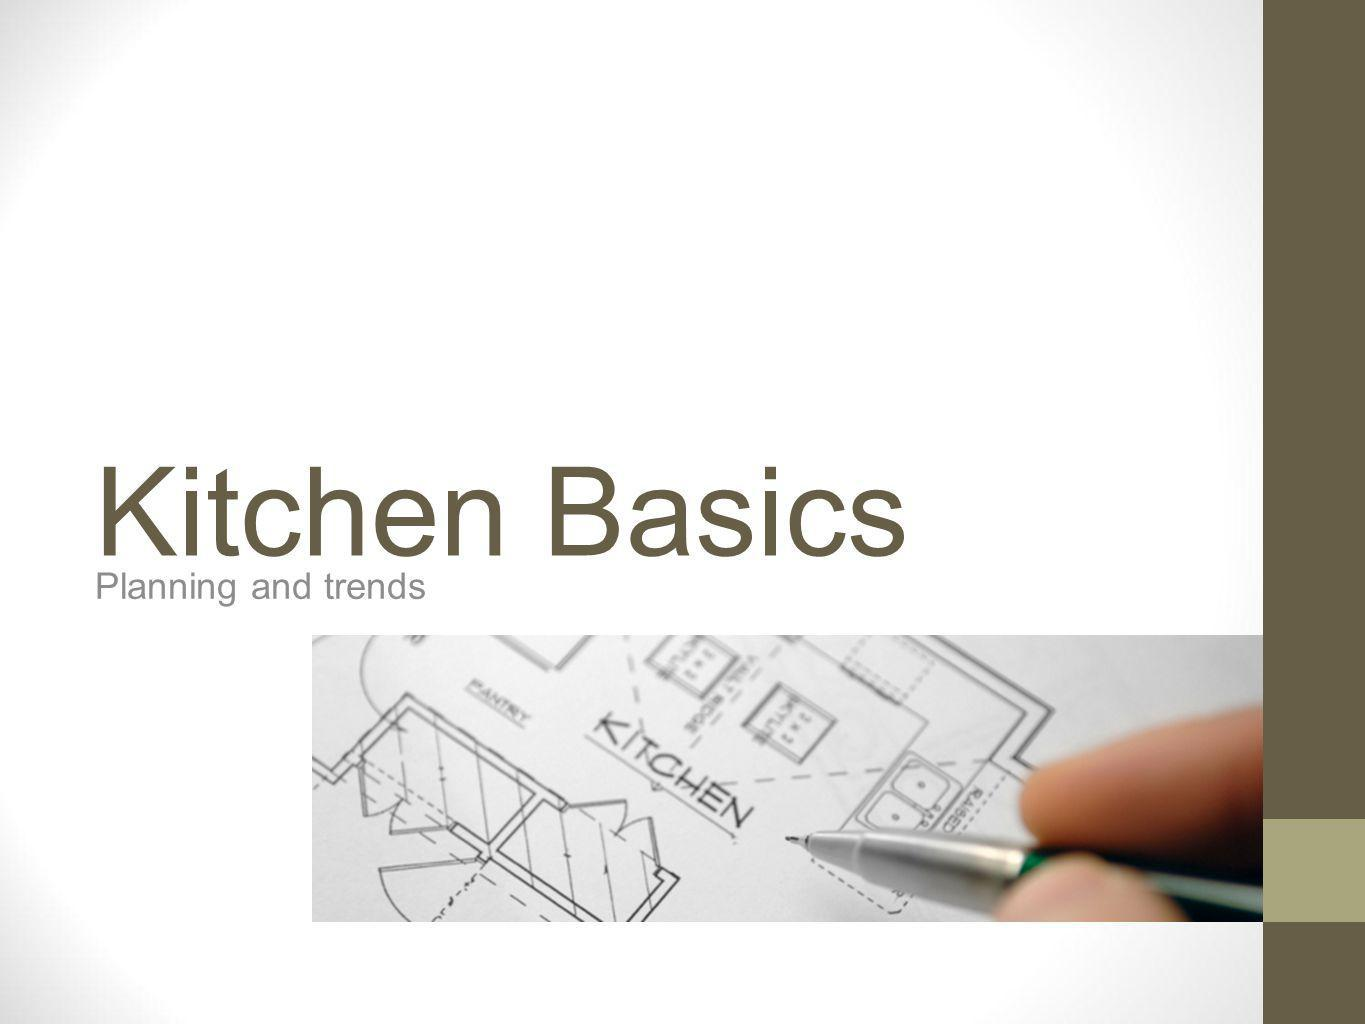 Kitchen Basics Planning and trends